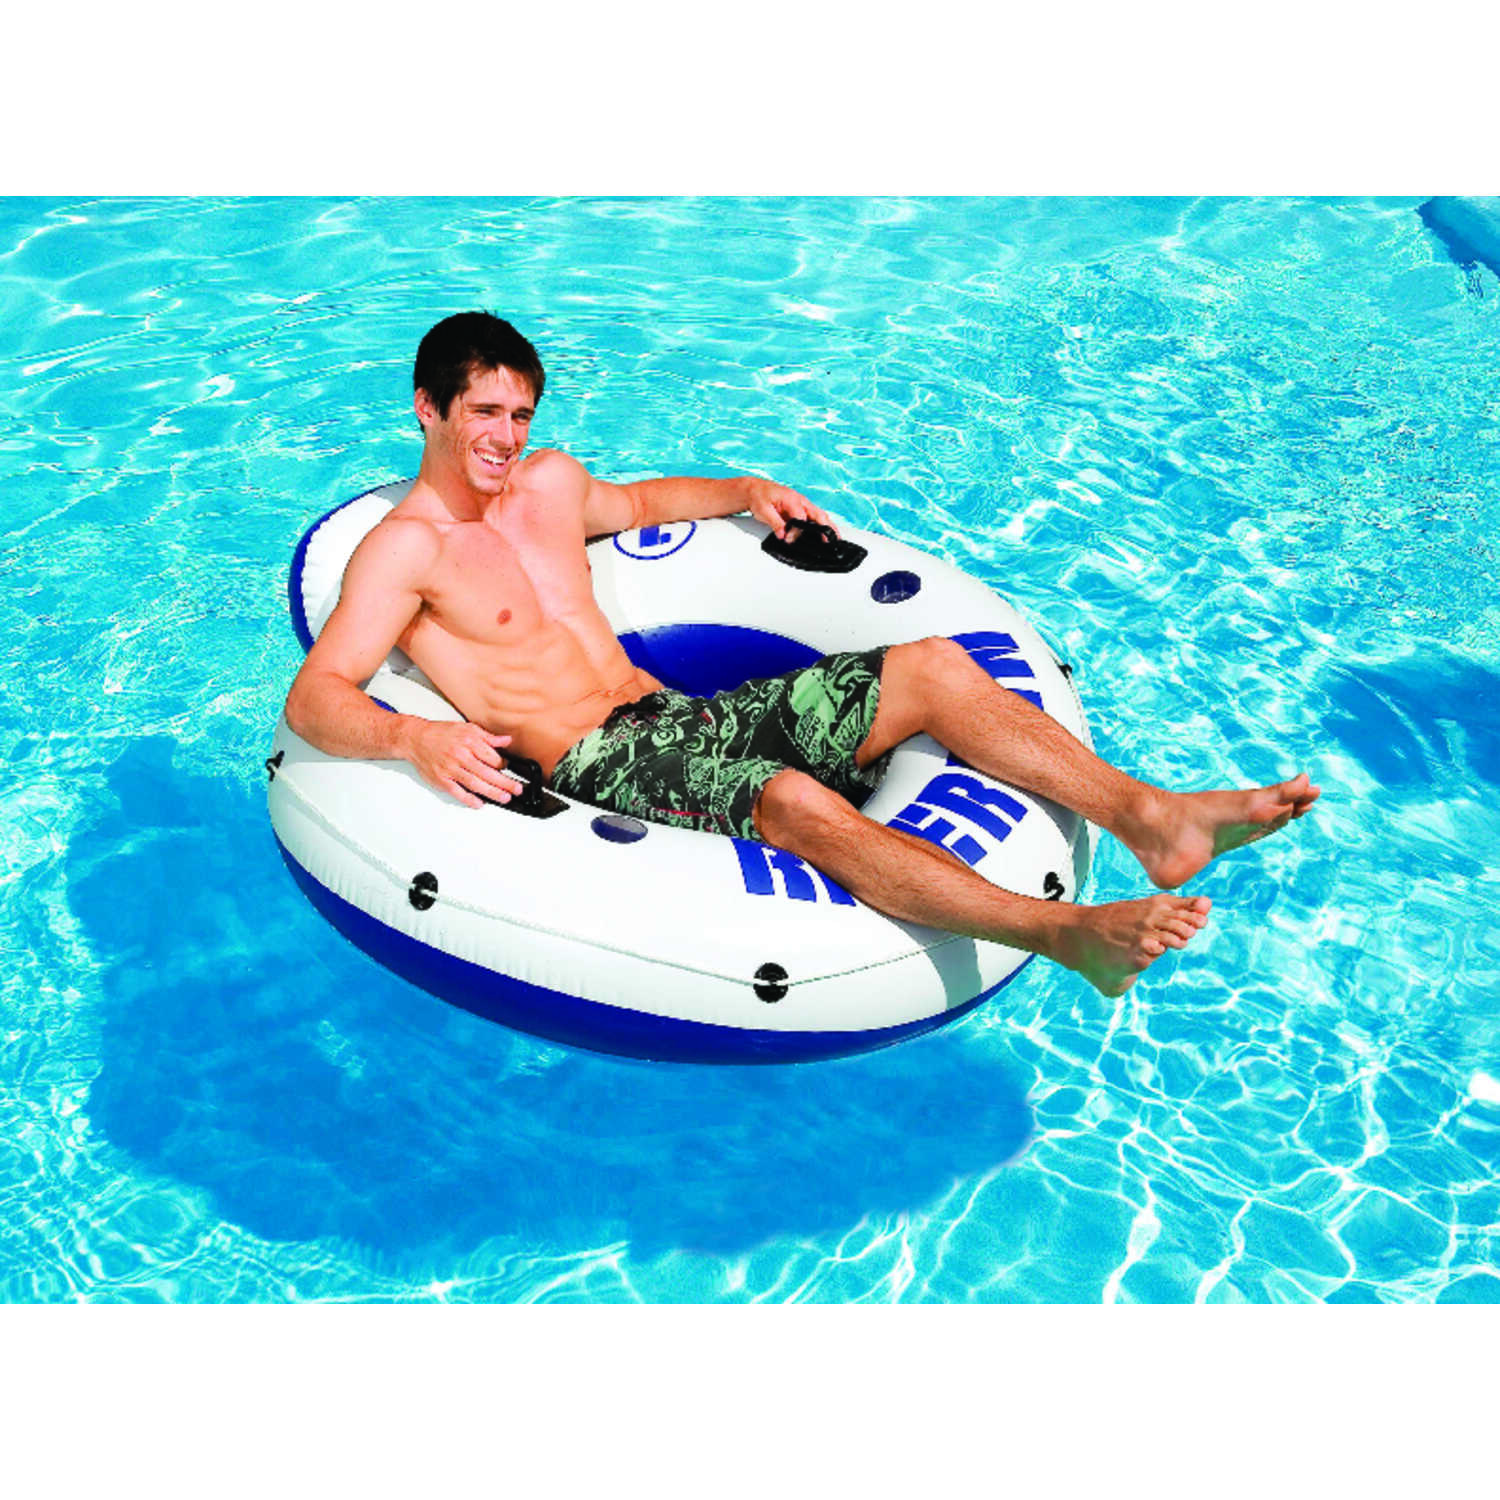 Intex  Blue/White  Vinyl  Inflatable Floating Tube